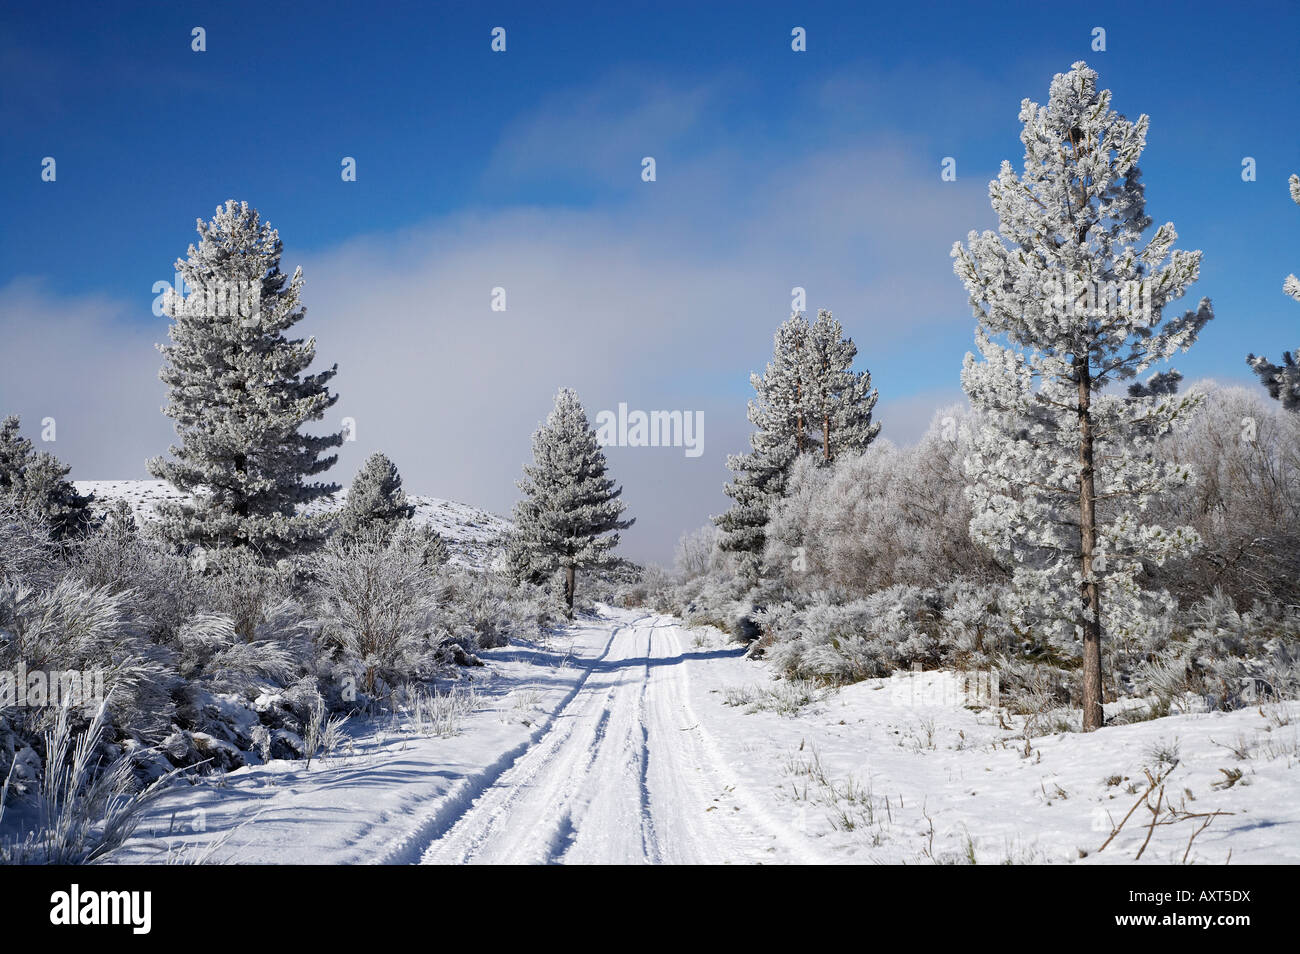 Snowy Track and Pine Trees Cambrians near St Bathans Maniototo South Island New Zealand - Stock Image